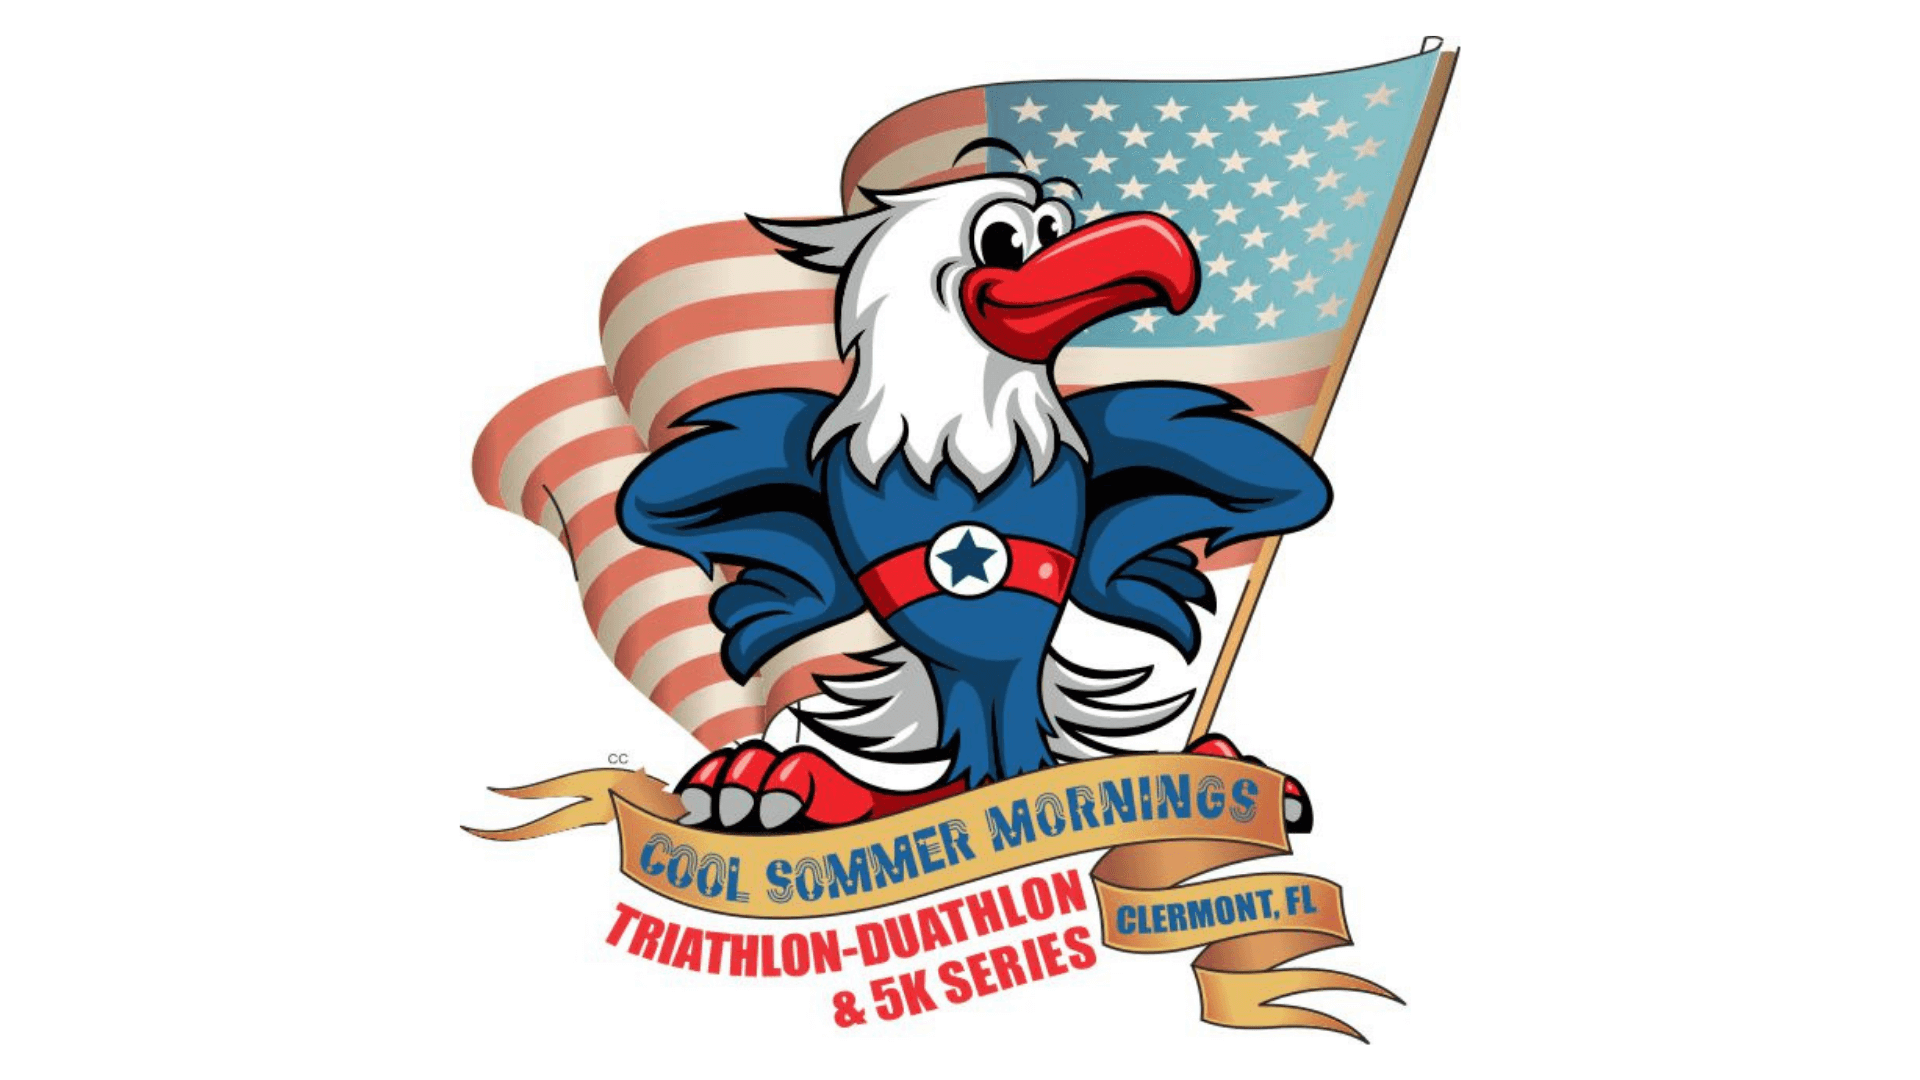 July 13 - Cool Sommer Mornings 5K Series Race #2 - Clermont